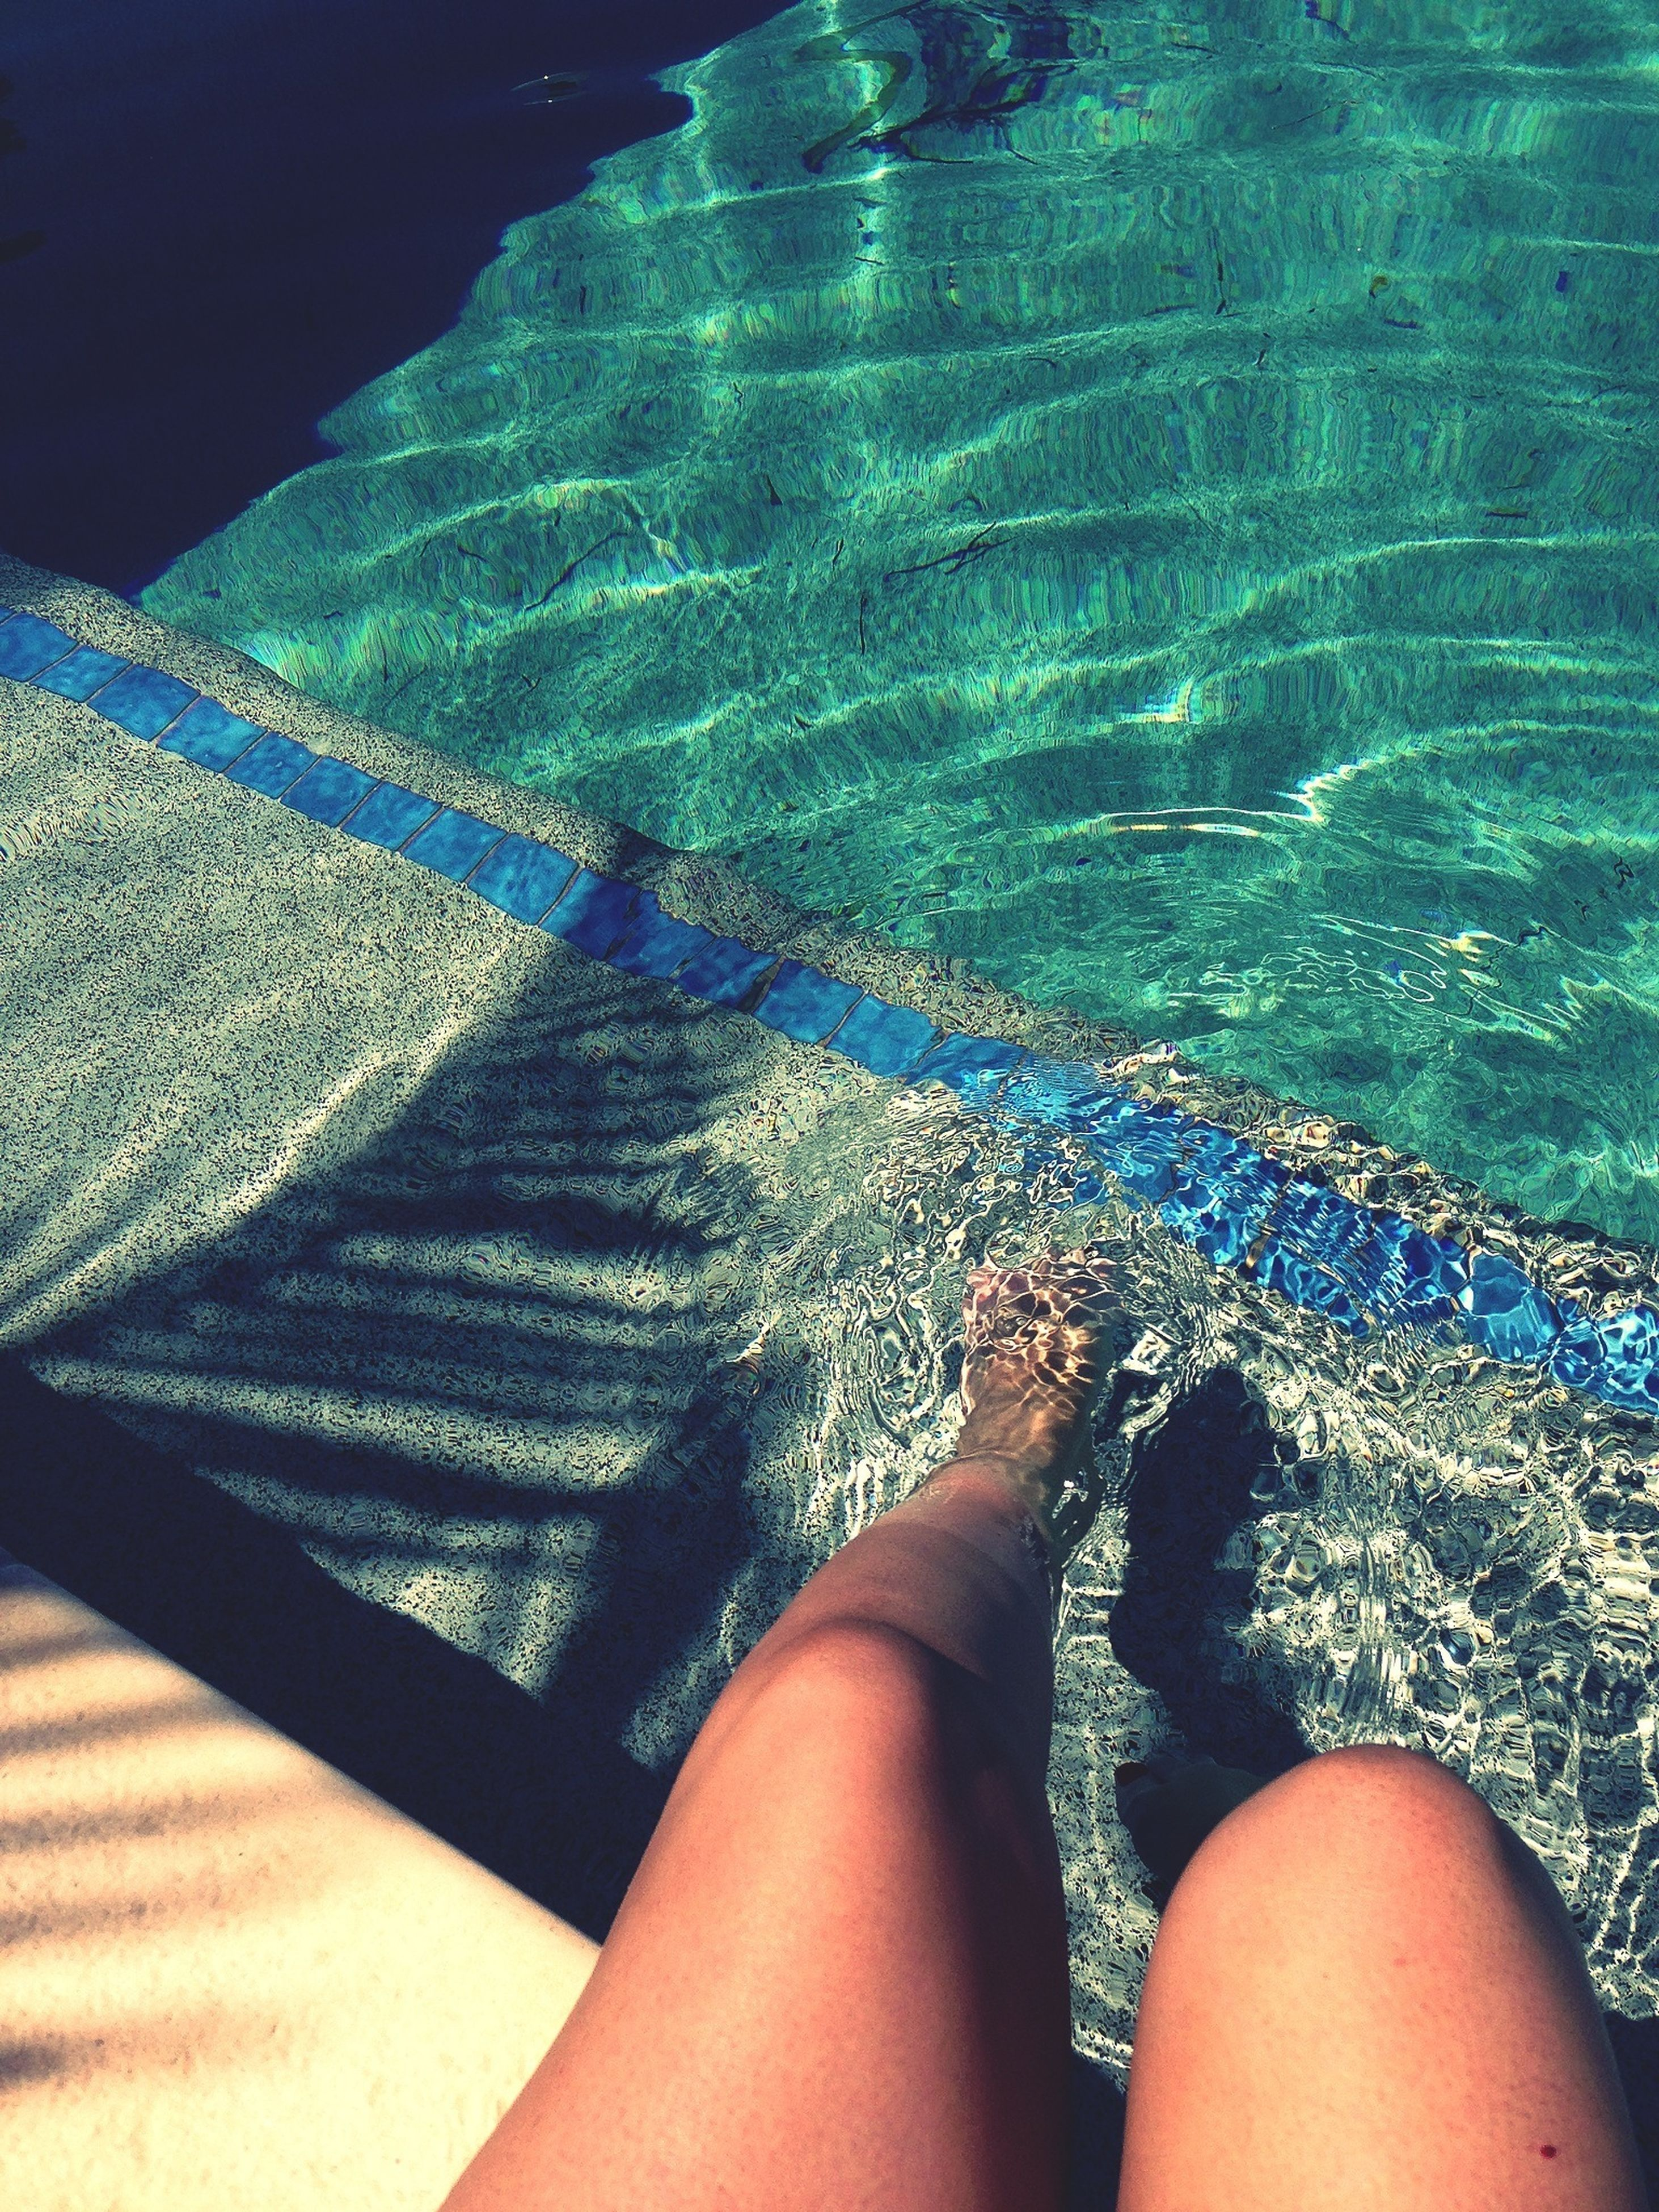 low section, person, personal perspective, water, barefoot, human foot, lifestyles, leisure activity, relaxation, high angle view, sea, vacations, relaxing, swimming pool, legs crossed at ankle, sunlight